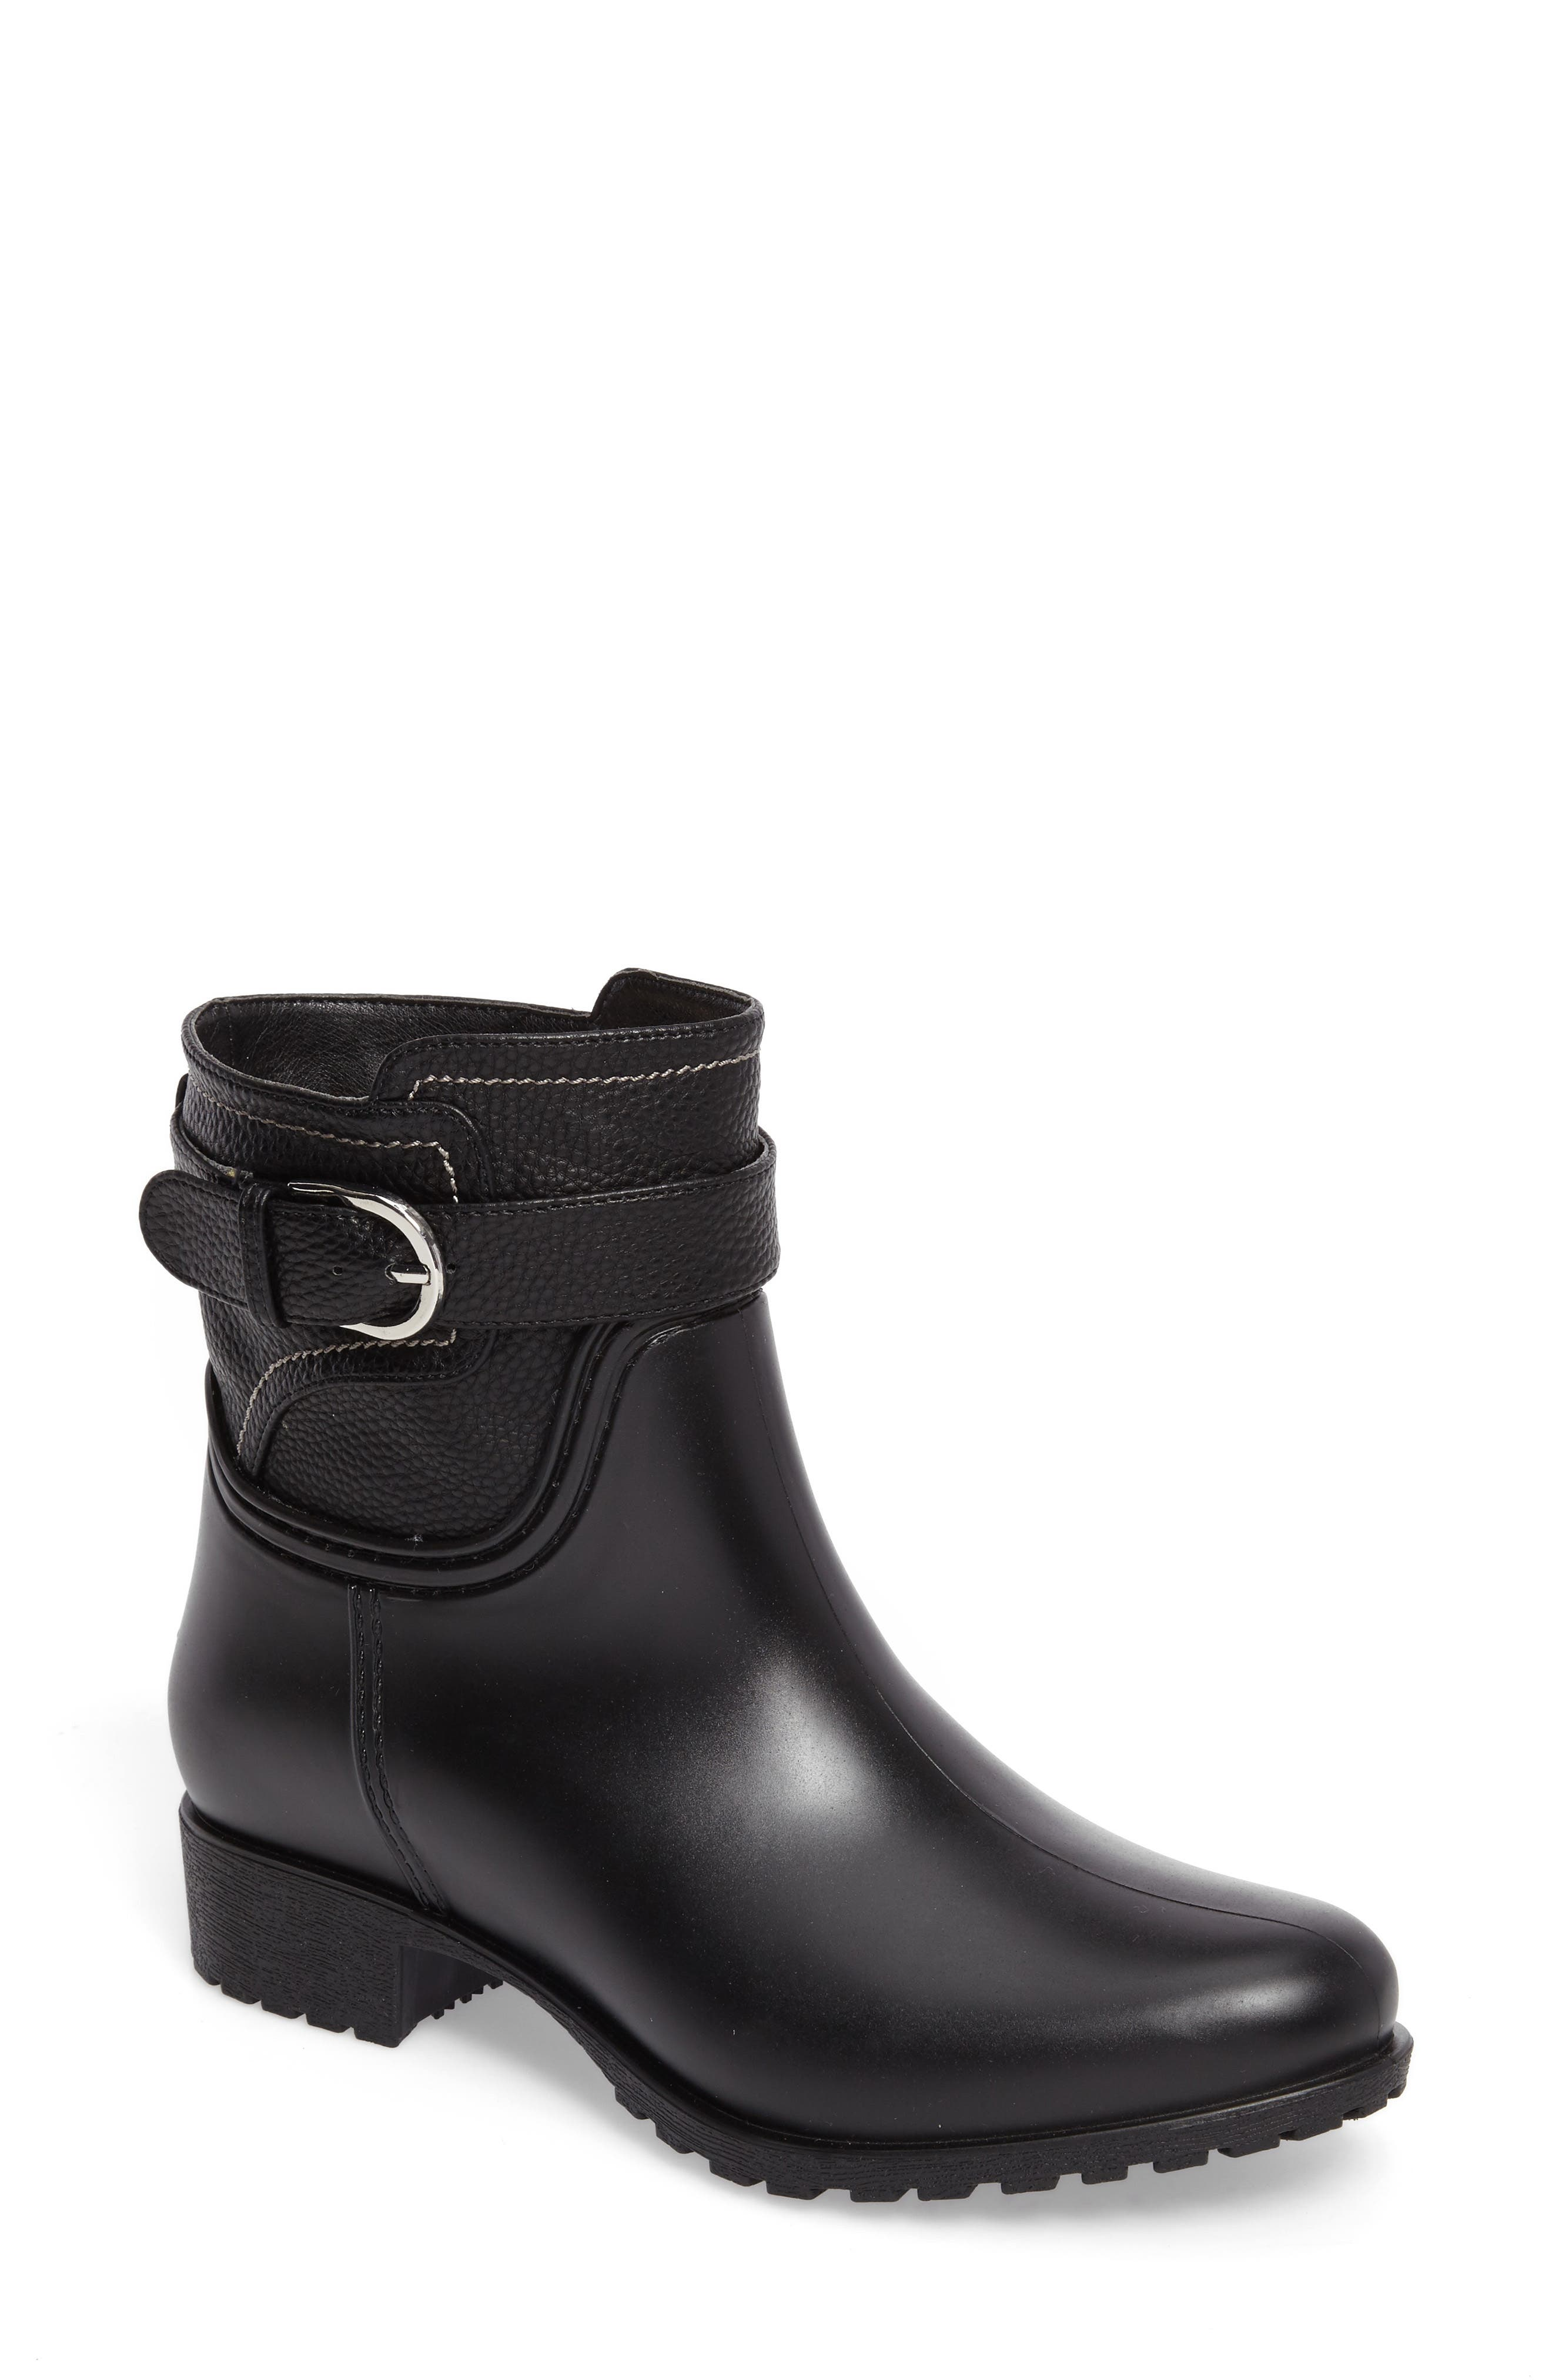 Alternate Image 1 Selected - däv Bowie Faux Water Resistant Mid Boot (Women)